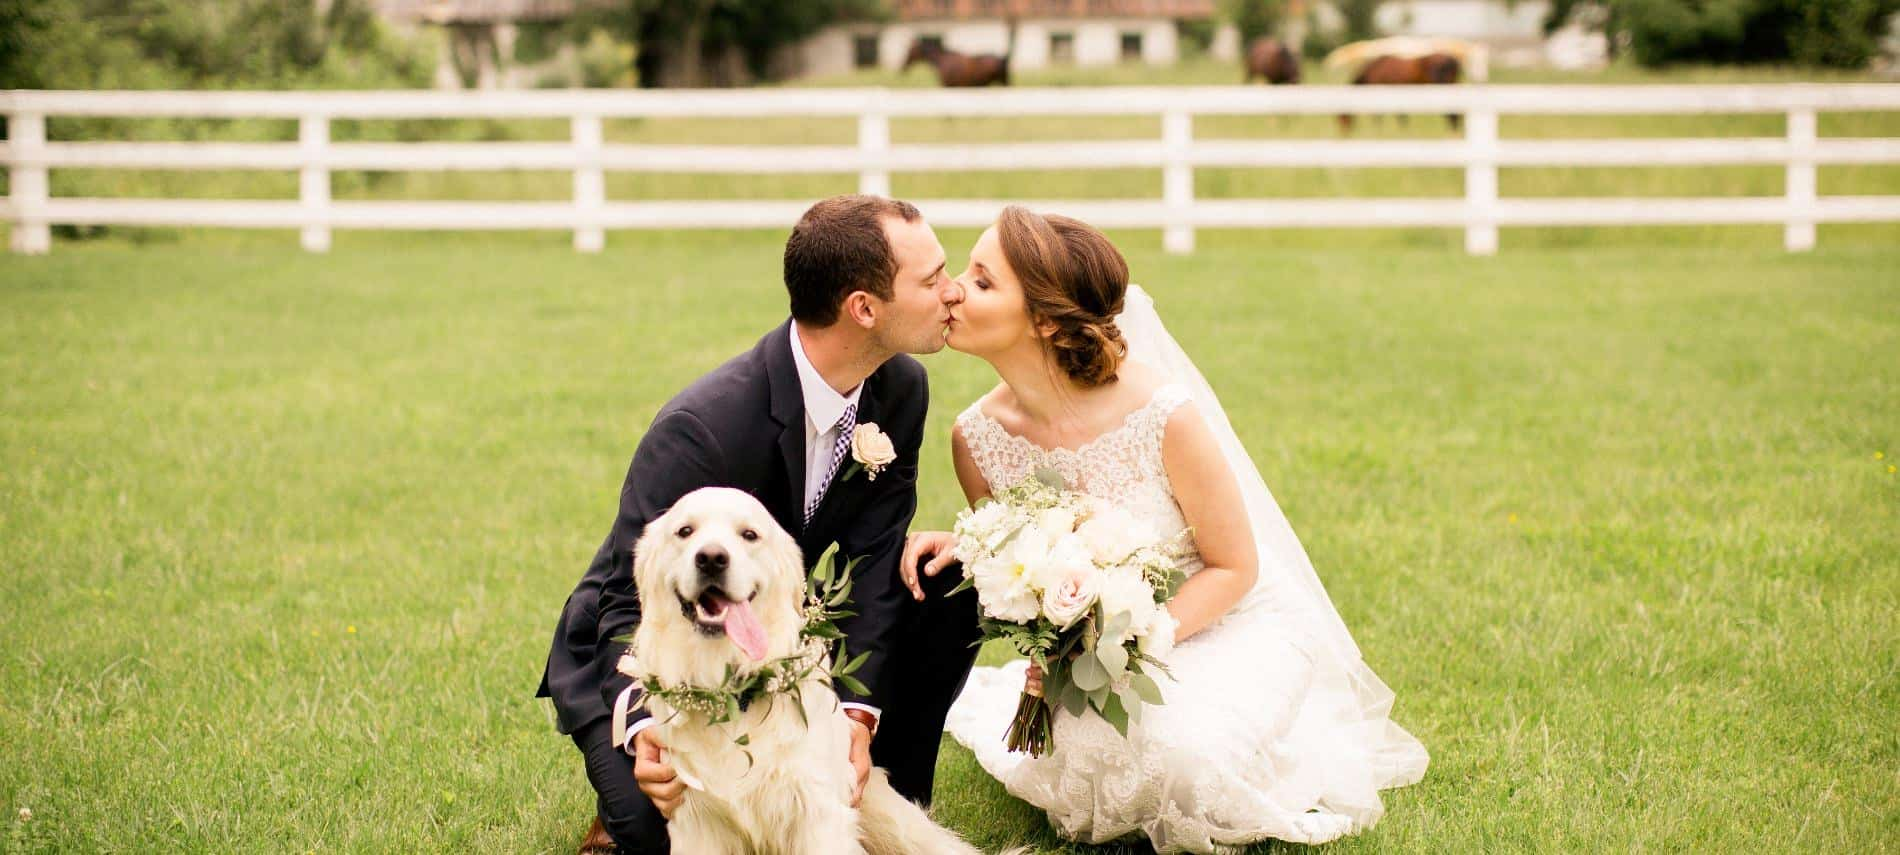 Bride with white wedding dress and groom with black suit kneeling down and kissing with white dog sitting nearby